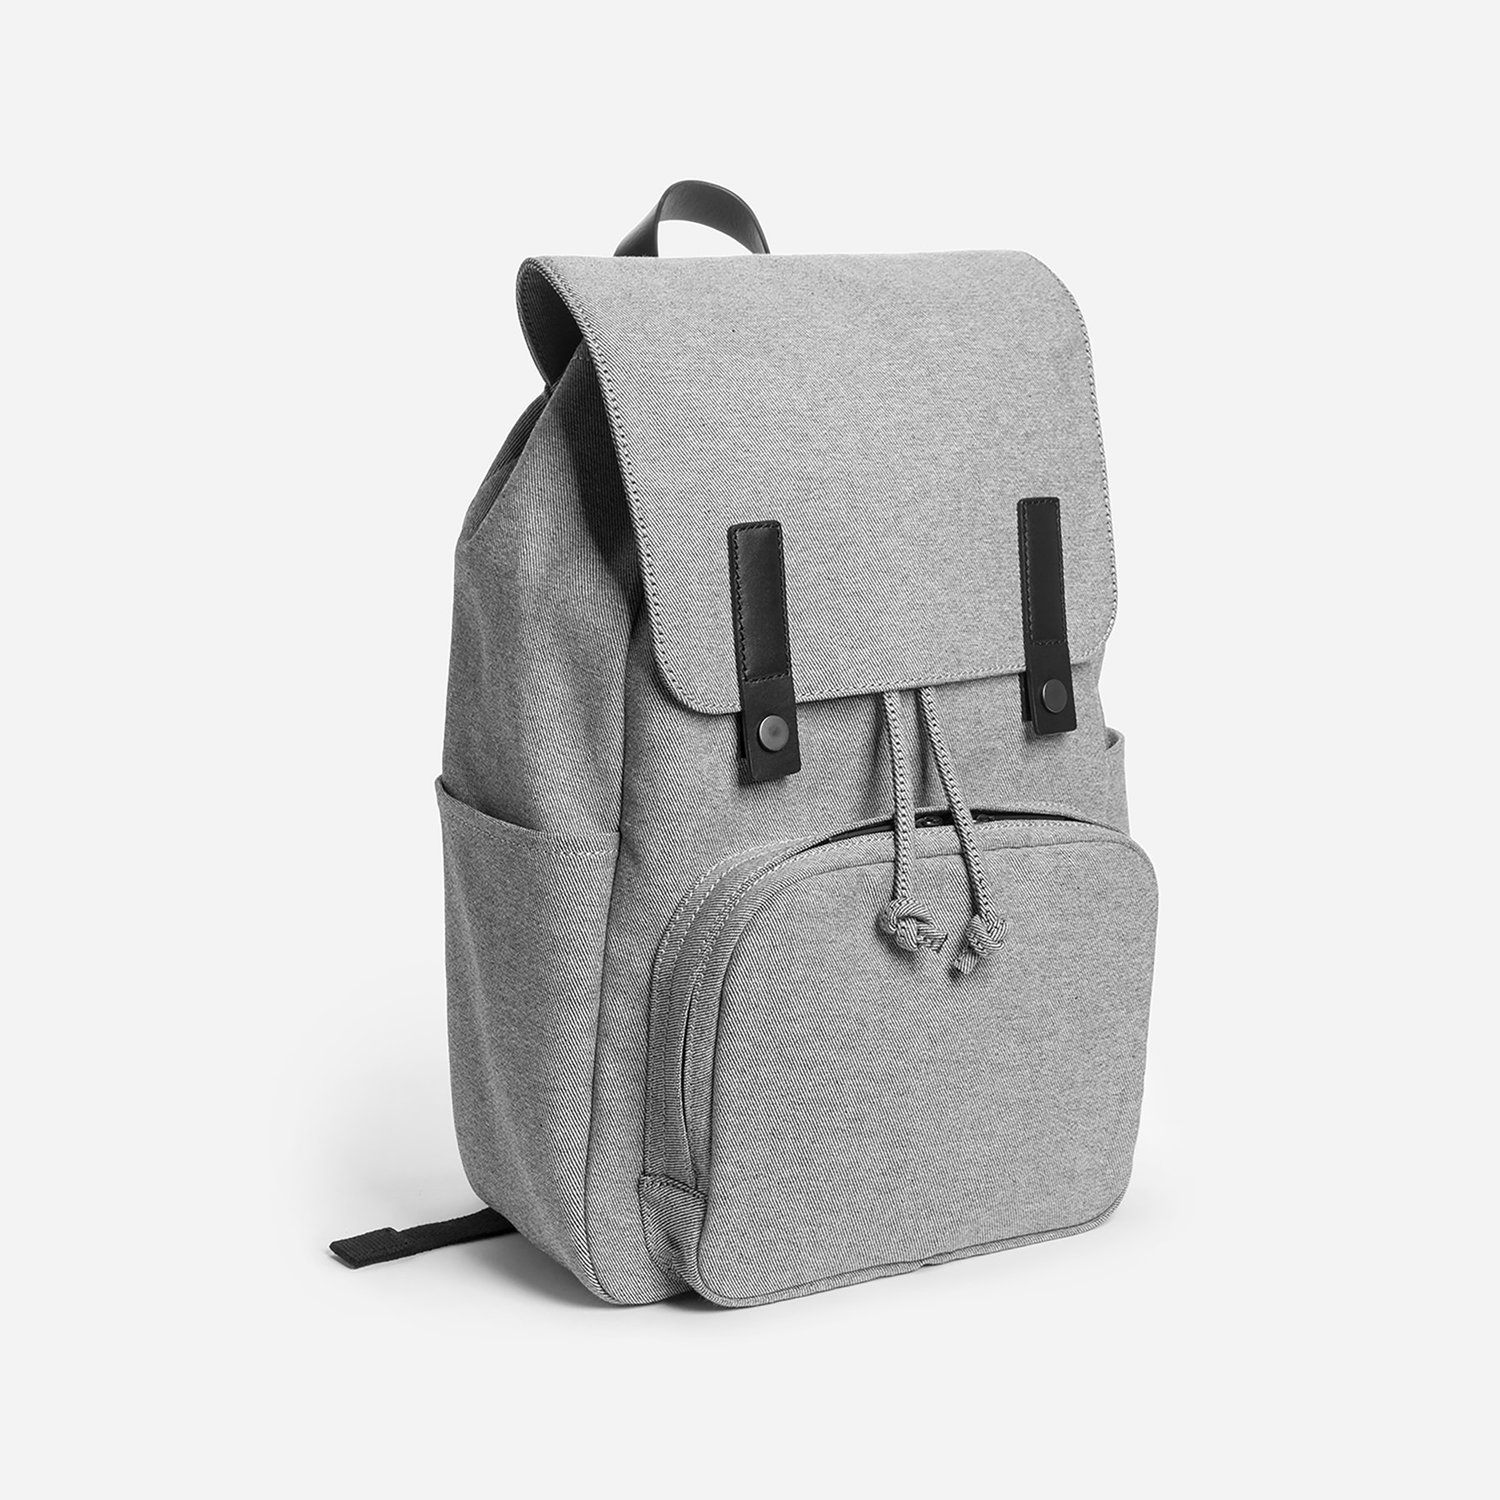 cheap outlet store super specials 8 Backpacks Under $100 — Garb